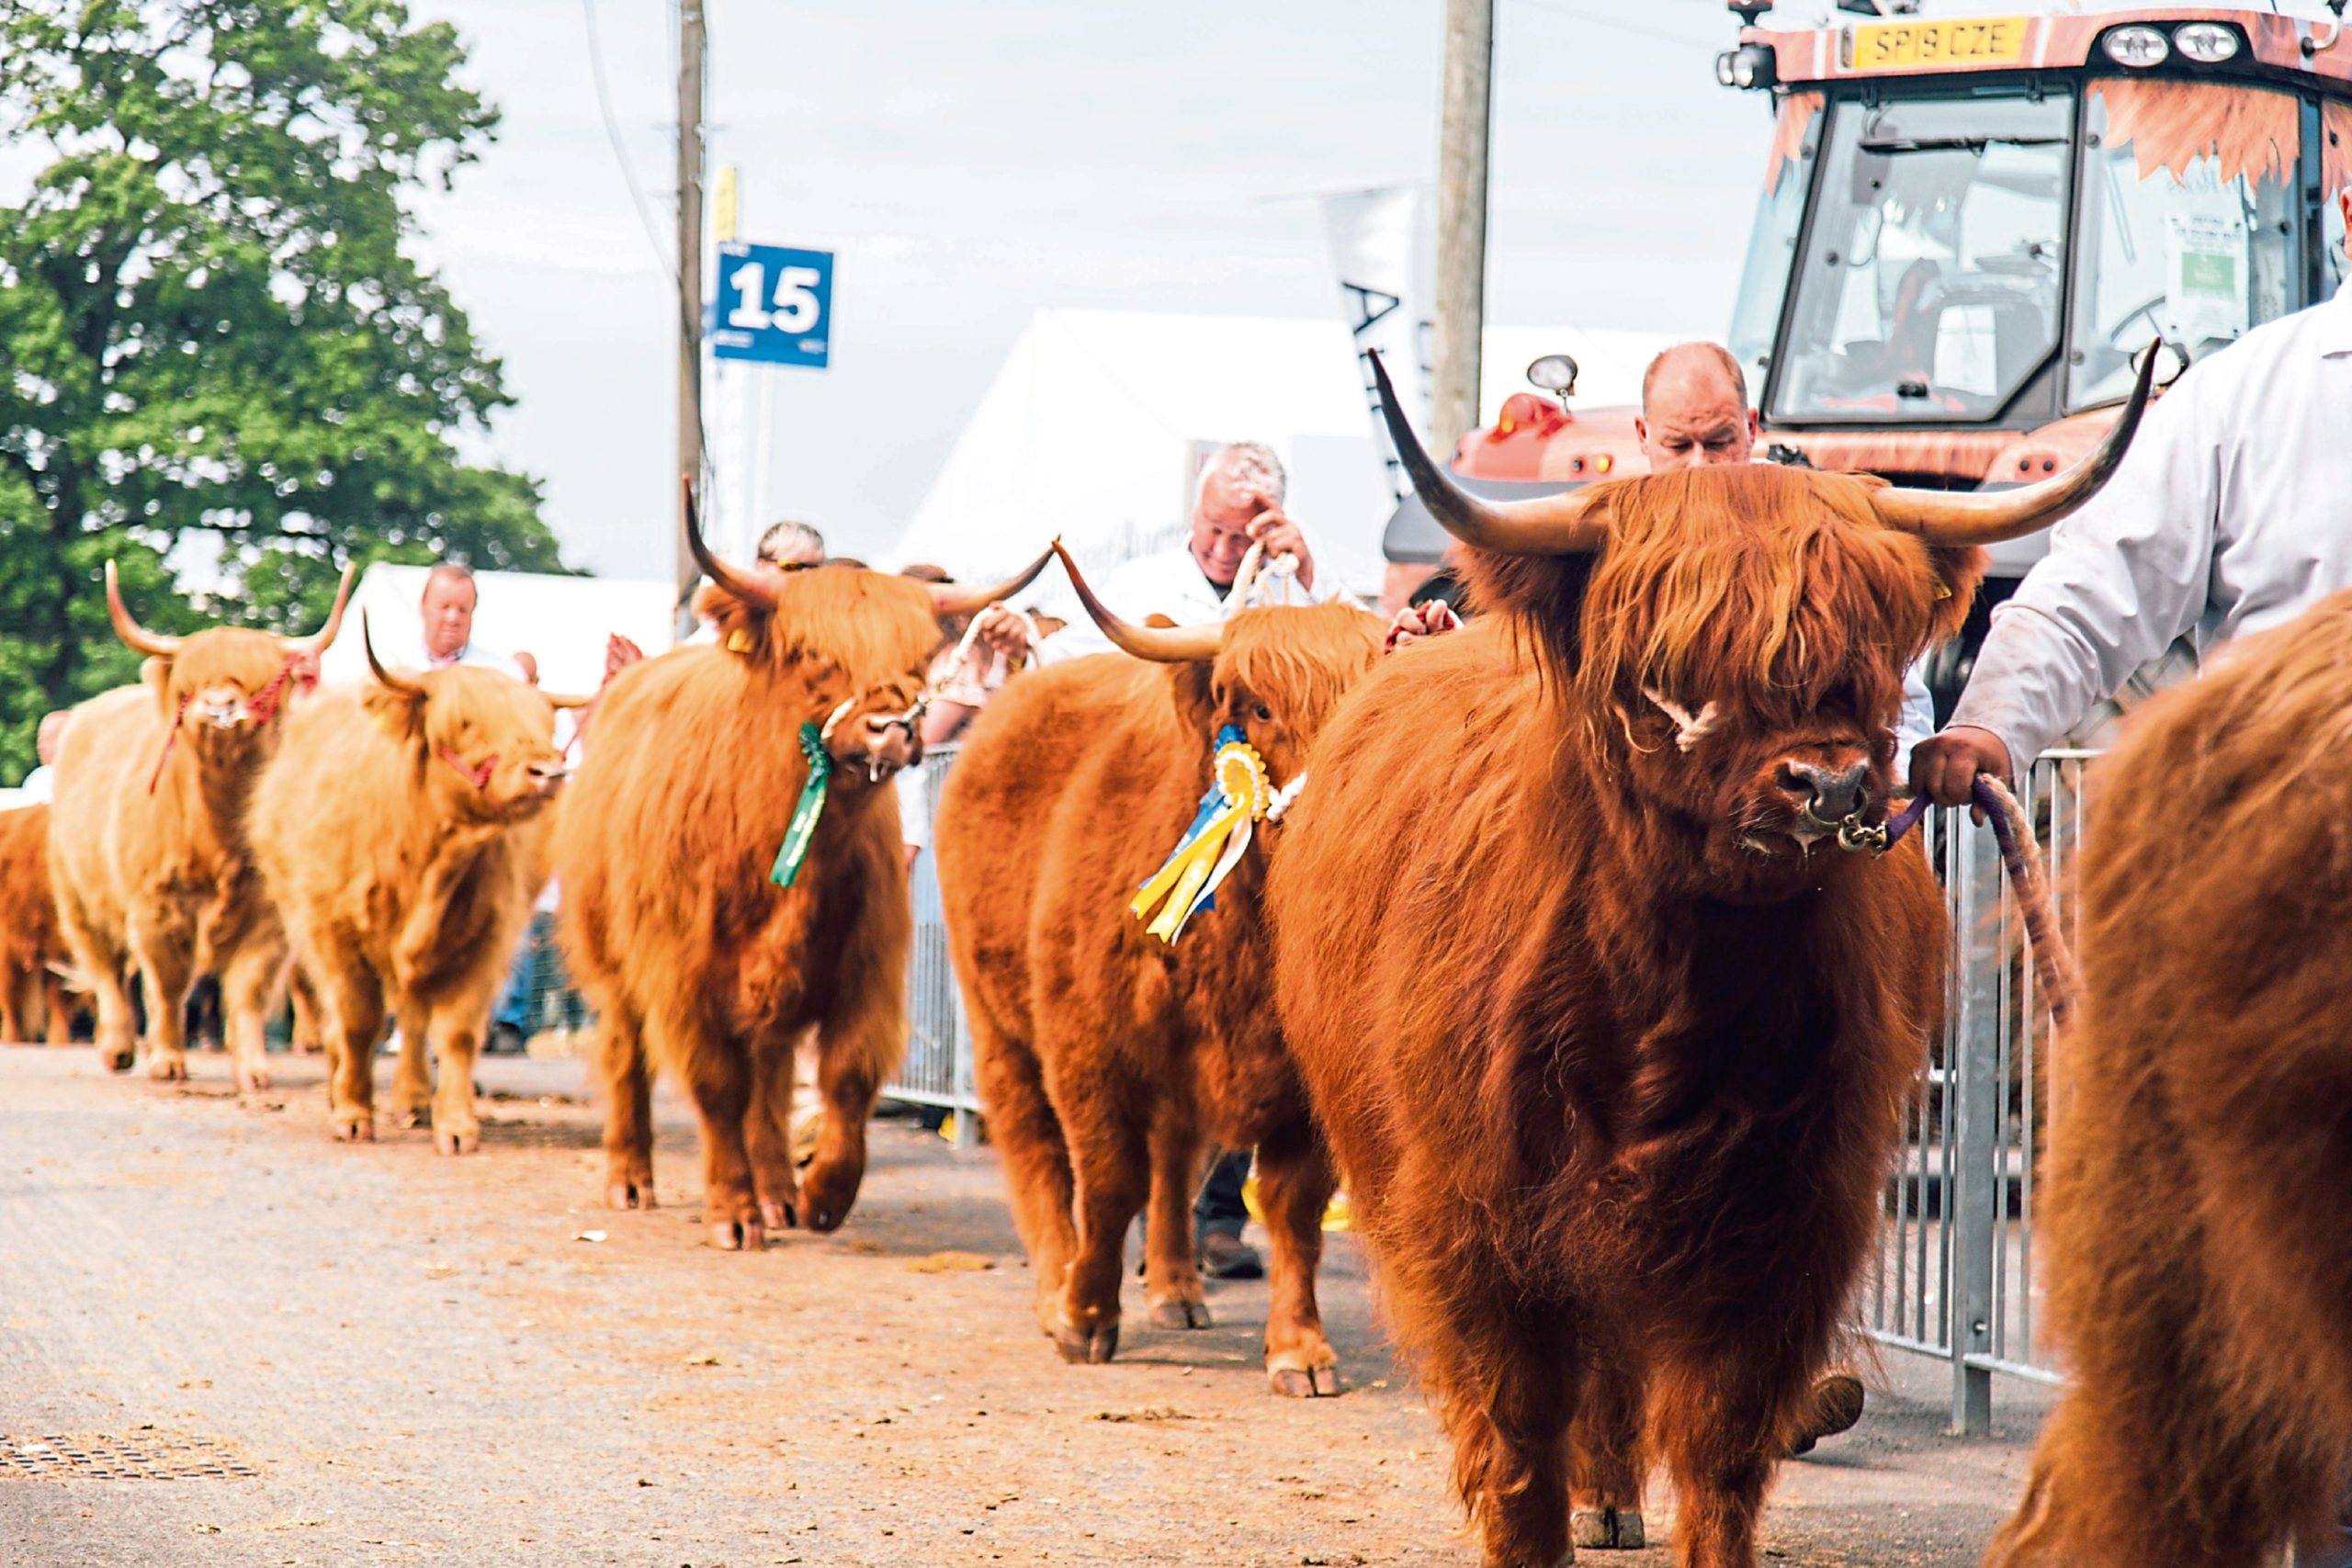 The Highland Cattle is one of the 11 classes of cow being judged in the event.